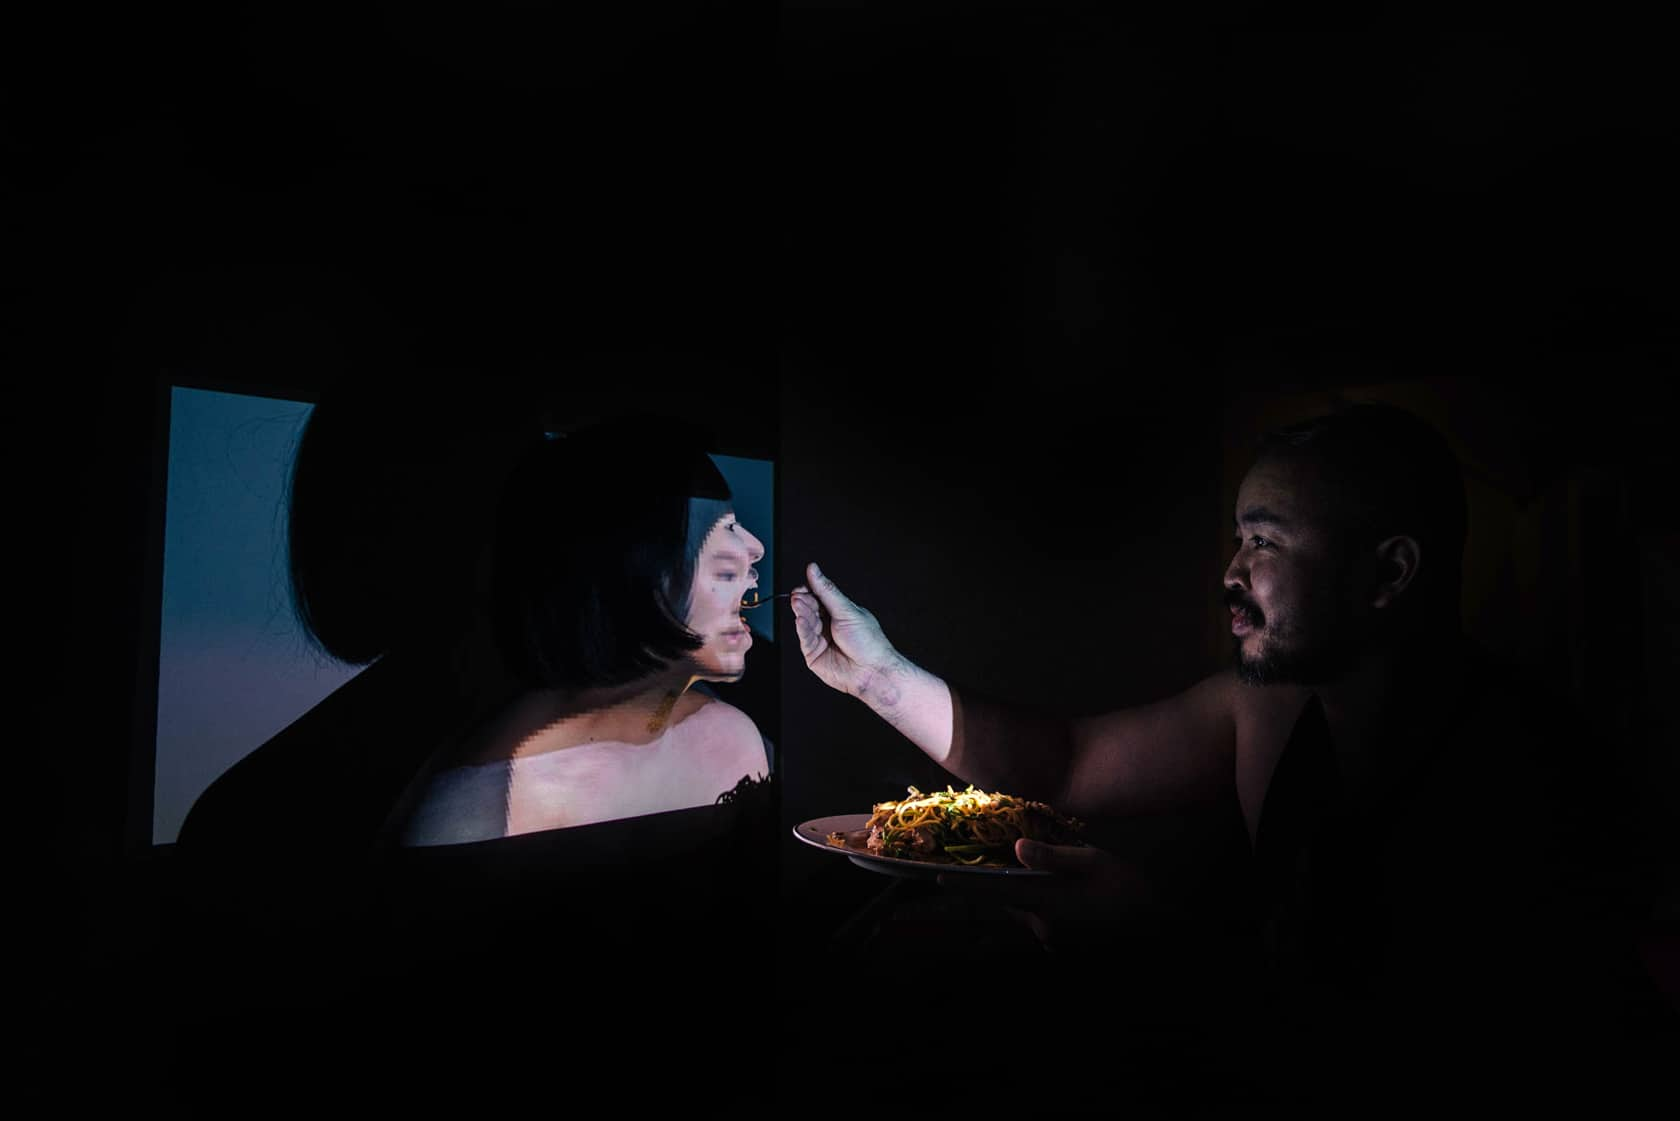 A person feed pasta to another person who is illuminated by a box